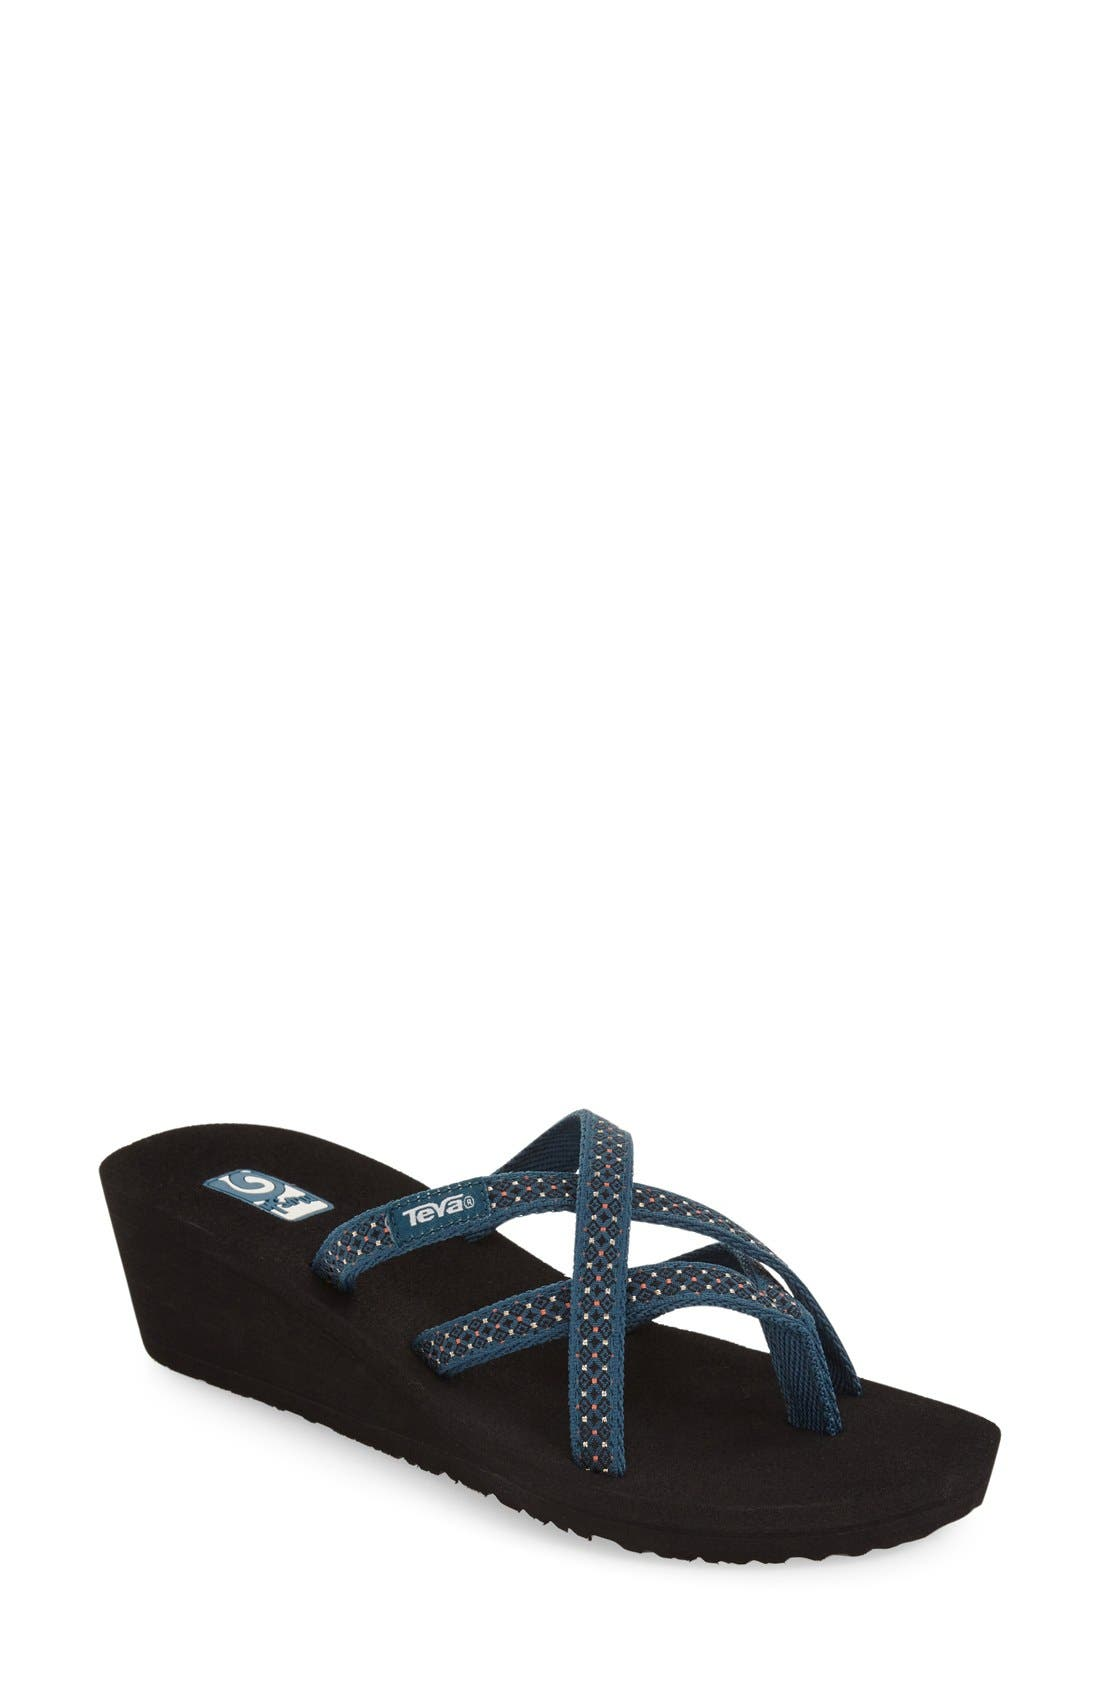 Main Image - Teva 'Mandalyn' Wedge Sandal (Women)